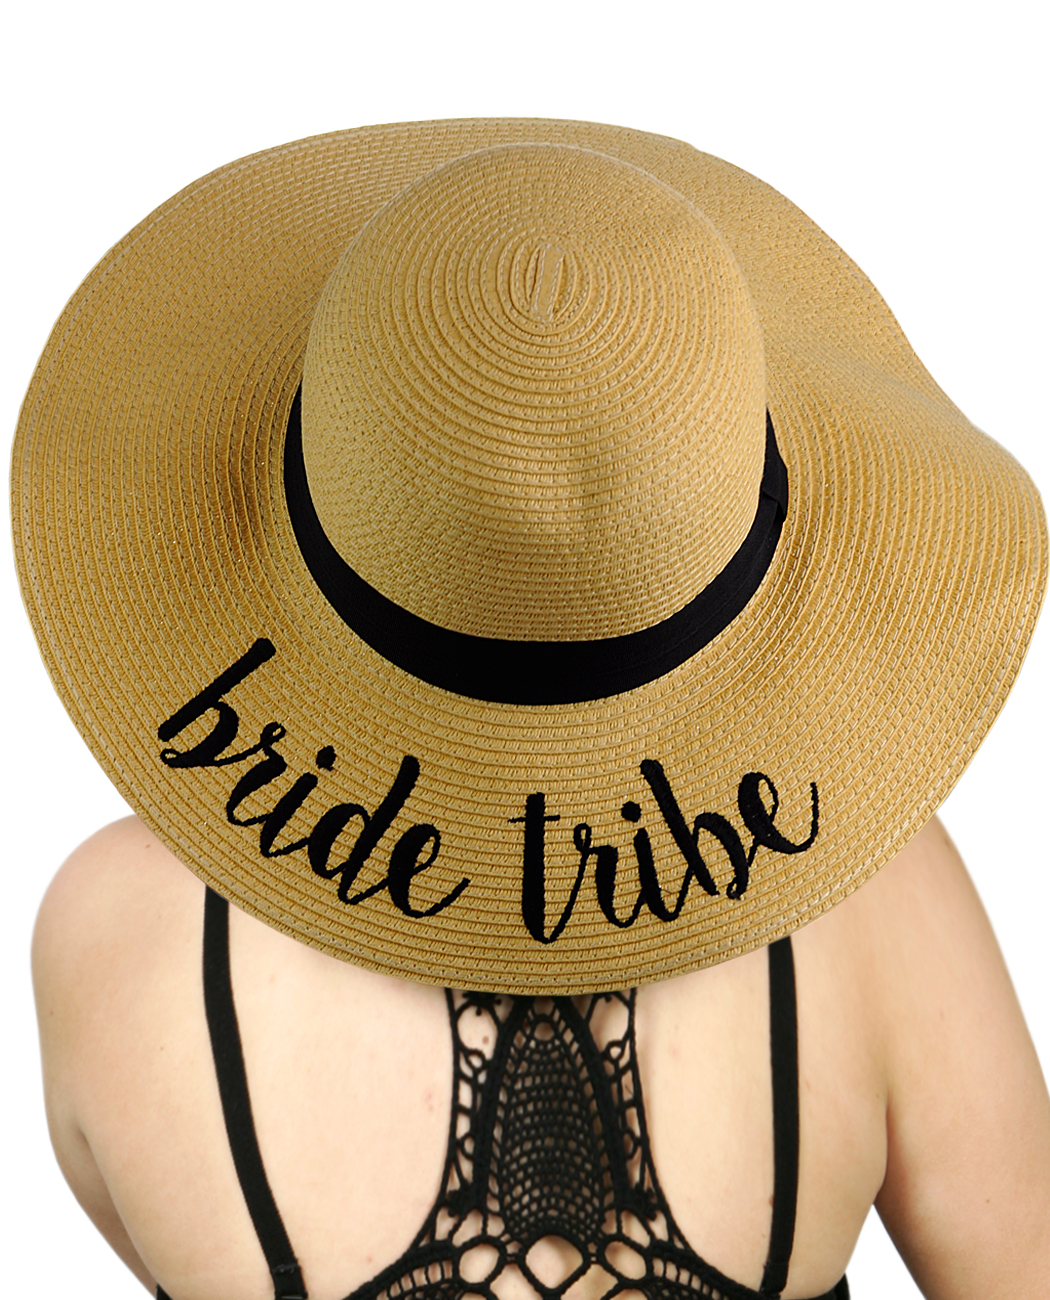 C.C - C.C Women s Paper Weaved Crushable Beach Embroidered Quote Floppy  Brim Sun Hat a4ae849ec6d